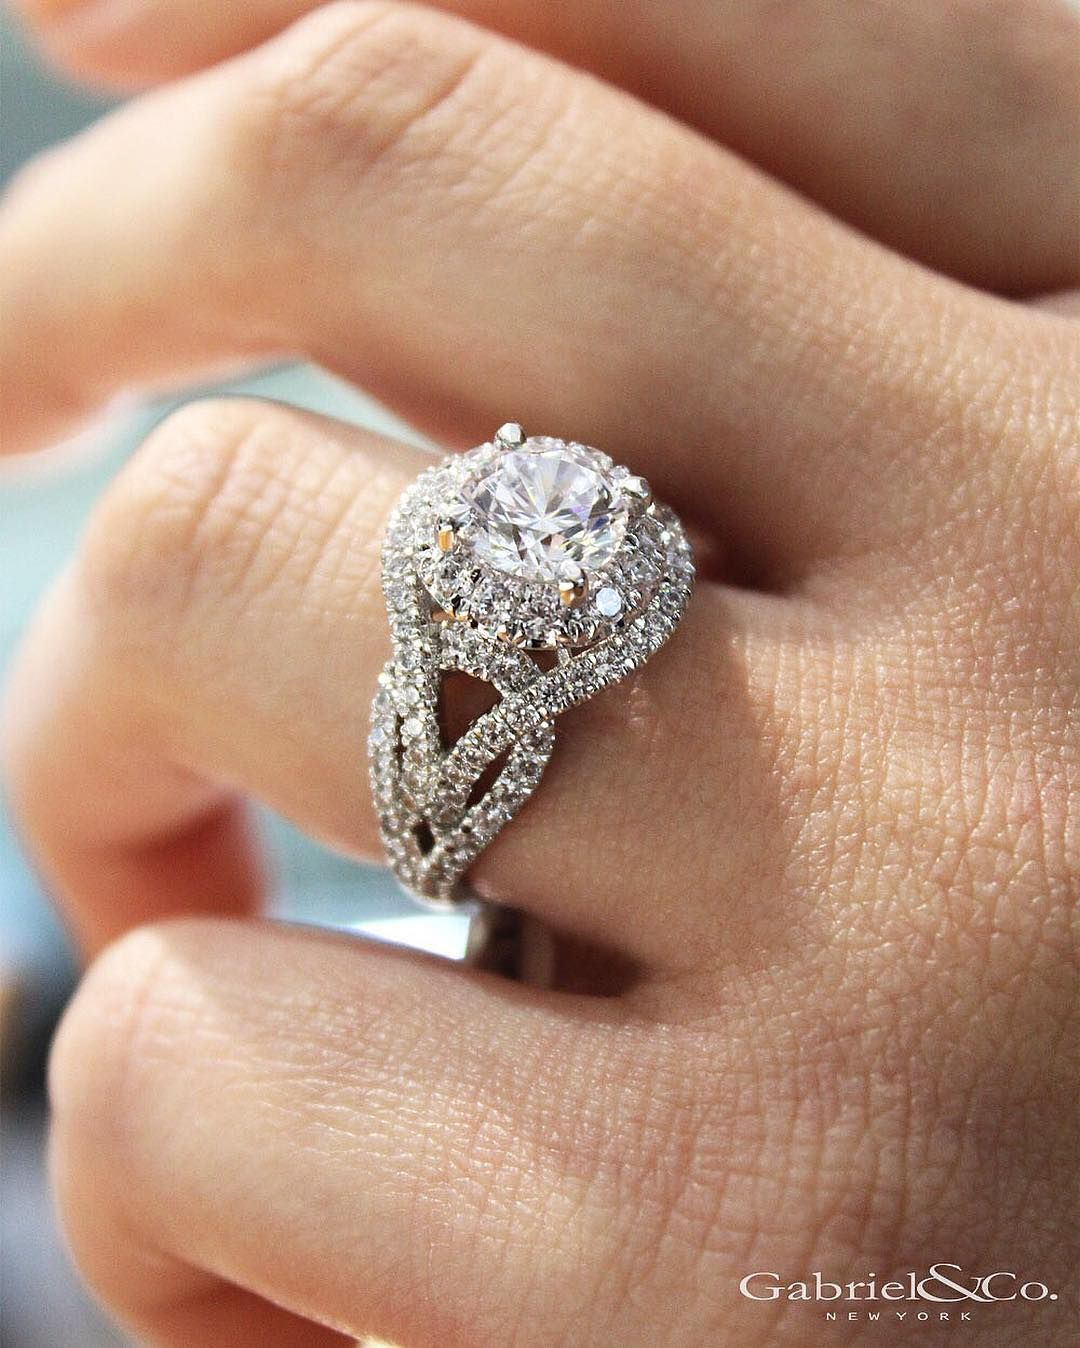 A love thats made to sparkle discover more of this stunning discover more of this stunning engagement ring by clicking junglespirit Image collections